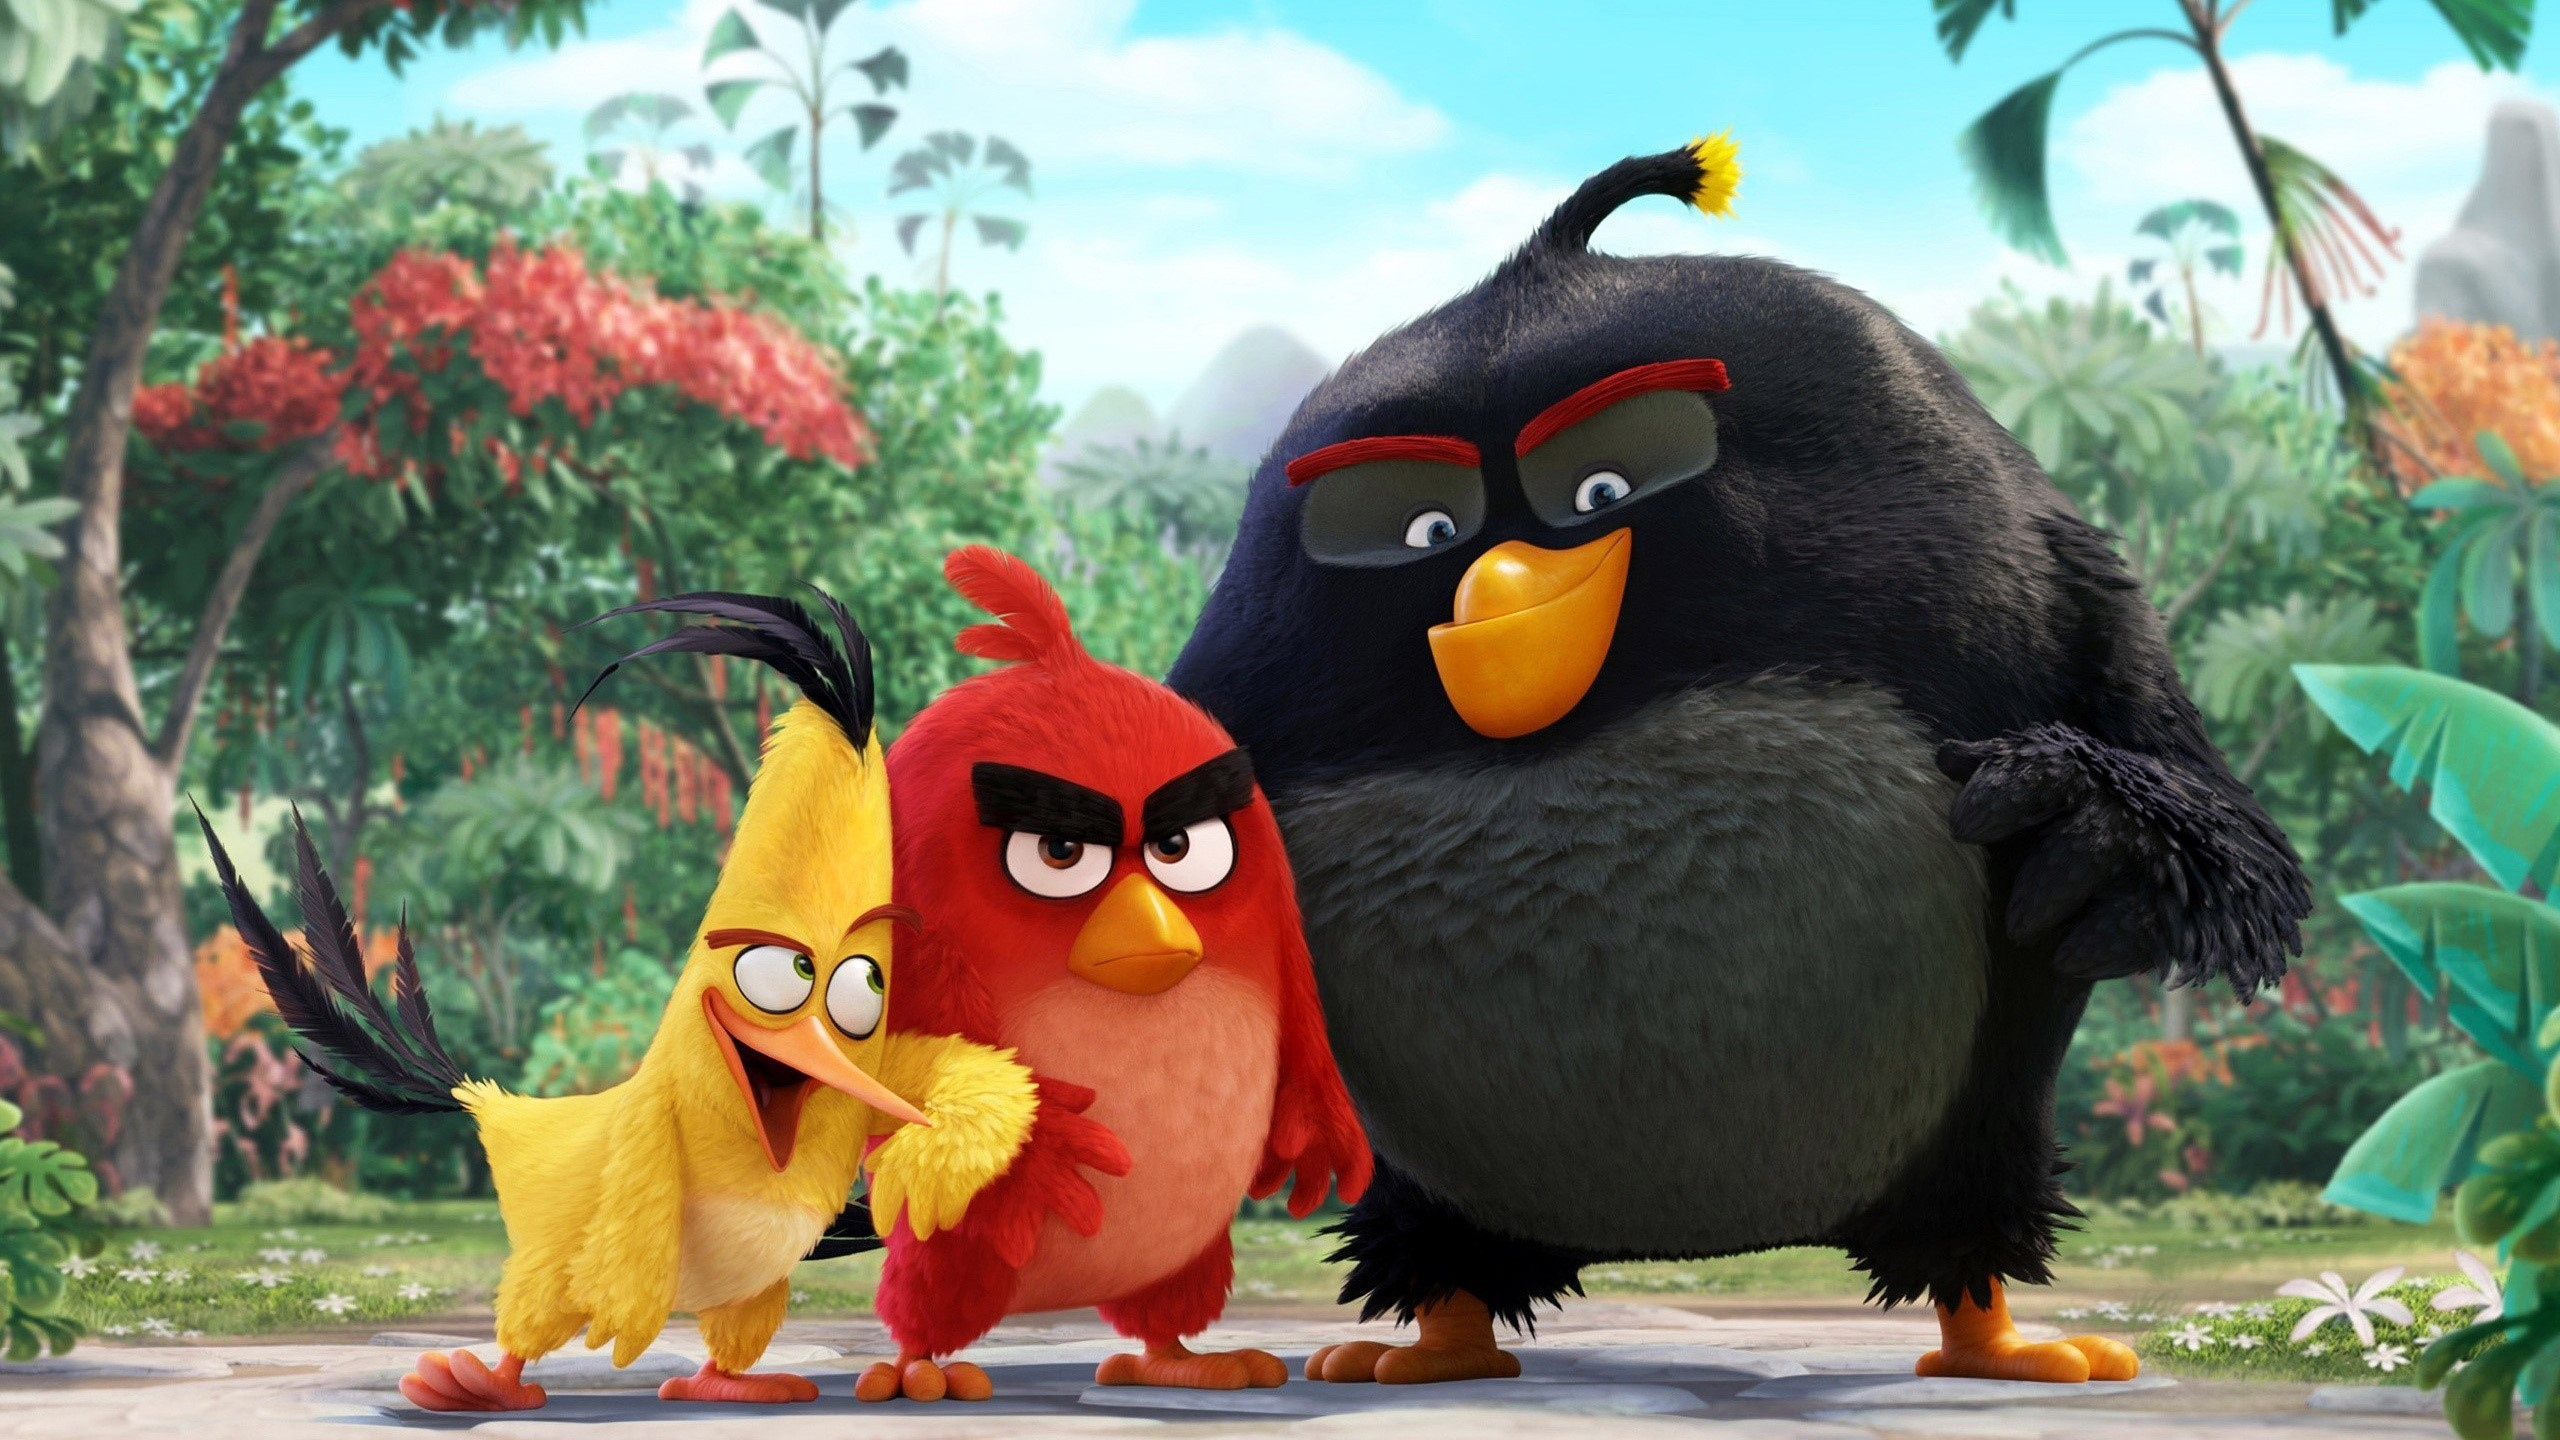 Wallpaper Angry Birds characters